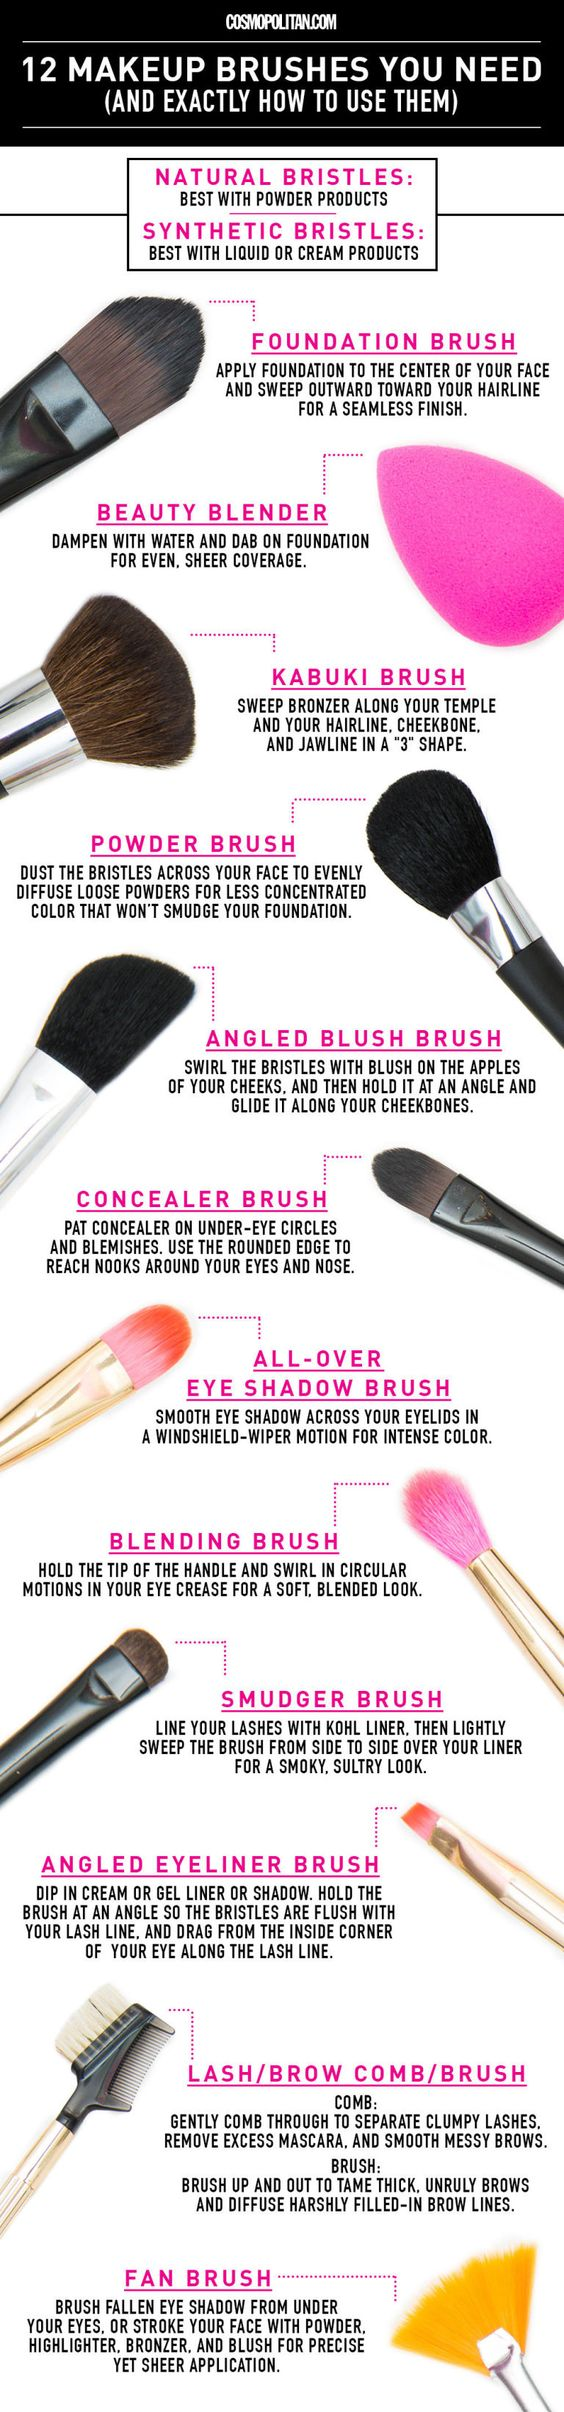 THE BEST MAKEUP BRUSHES  GUIDE: Cosmopolitan.com rounded up the best and most helpful beauty brushes and makeup tools every girl needs in her arsenal. Here you'll learn how to use each tool and what makeup to use with it. Click through to see beauty tutorials that teach you the best way to apply makeup and use these must-have brushes including a foundation brush, beauty blender, powder brush, angled blush brush, concealer brush, blender brush, eyeshadow brush, and more.